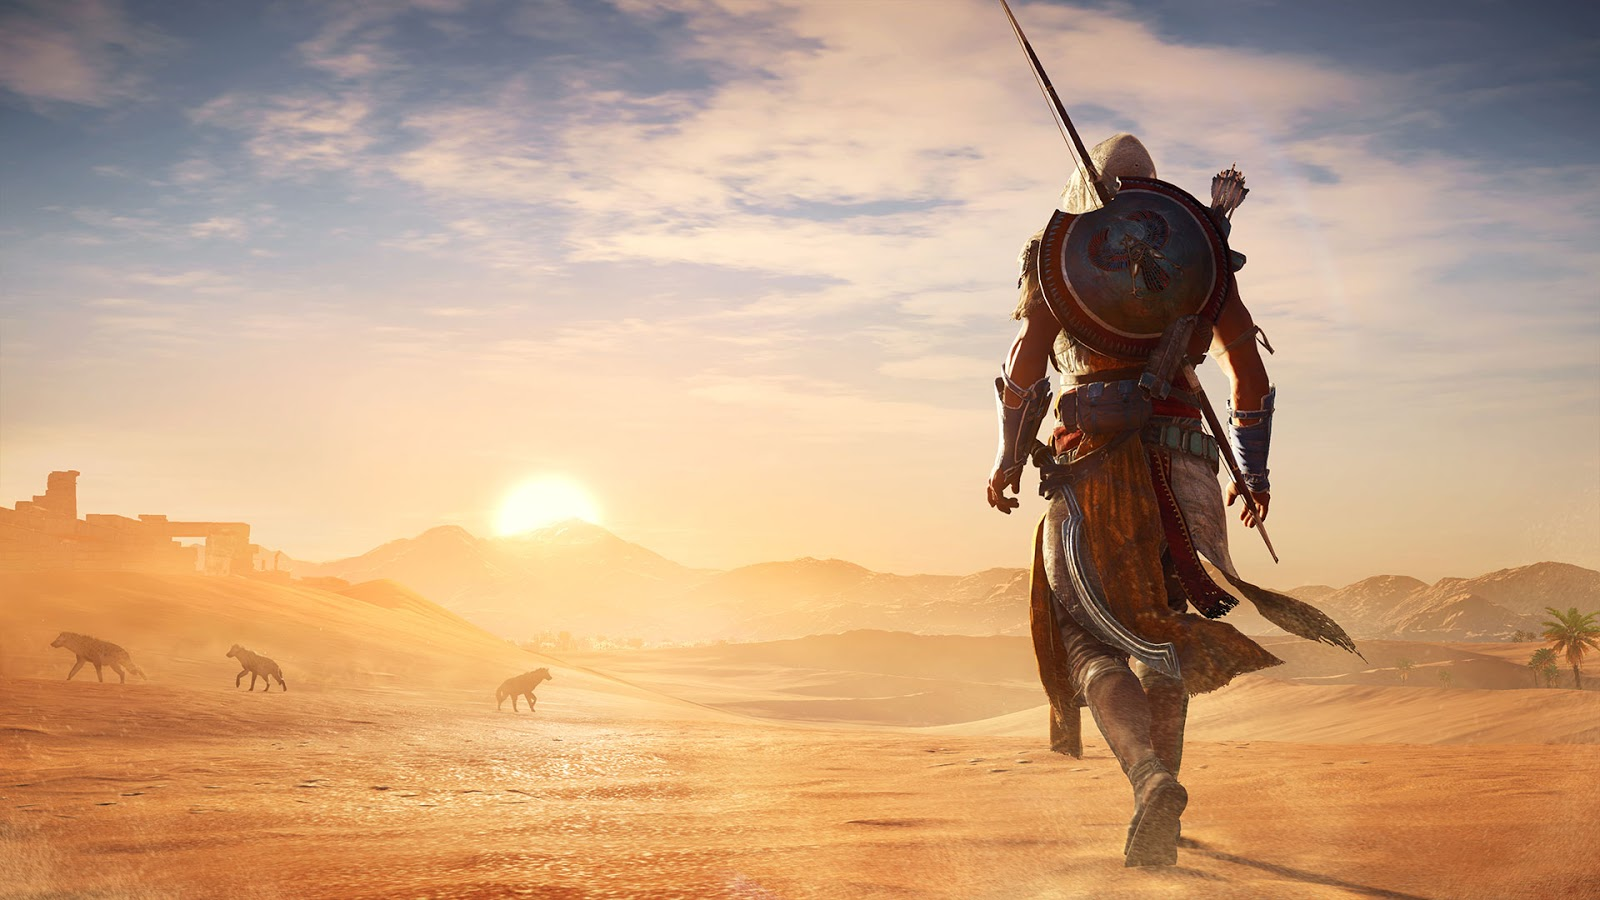 Ryan M. Holt: First Impressions – Assassin's Creed Origins